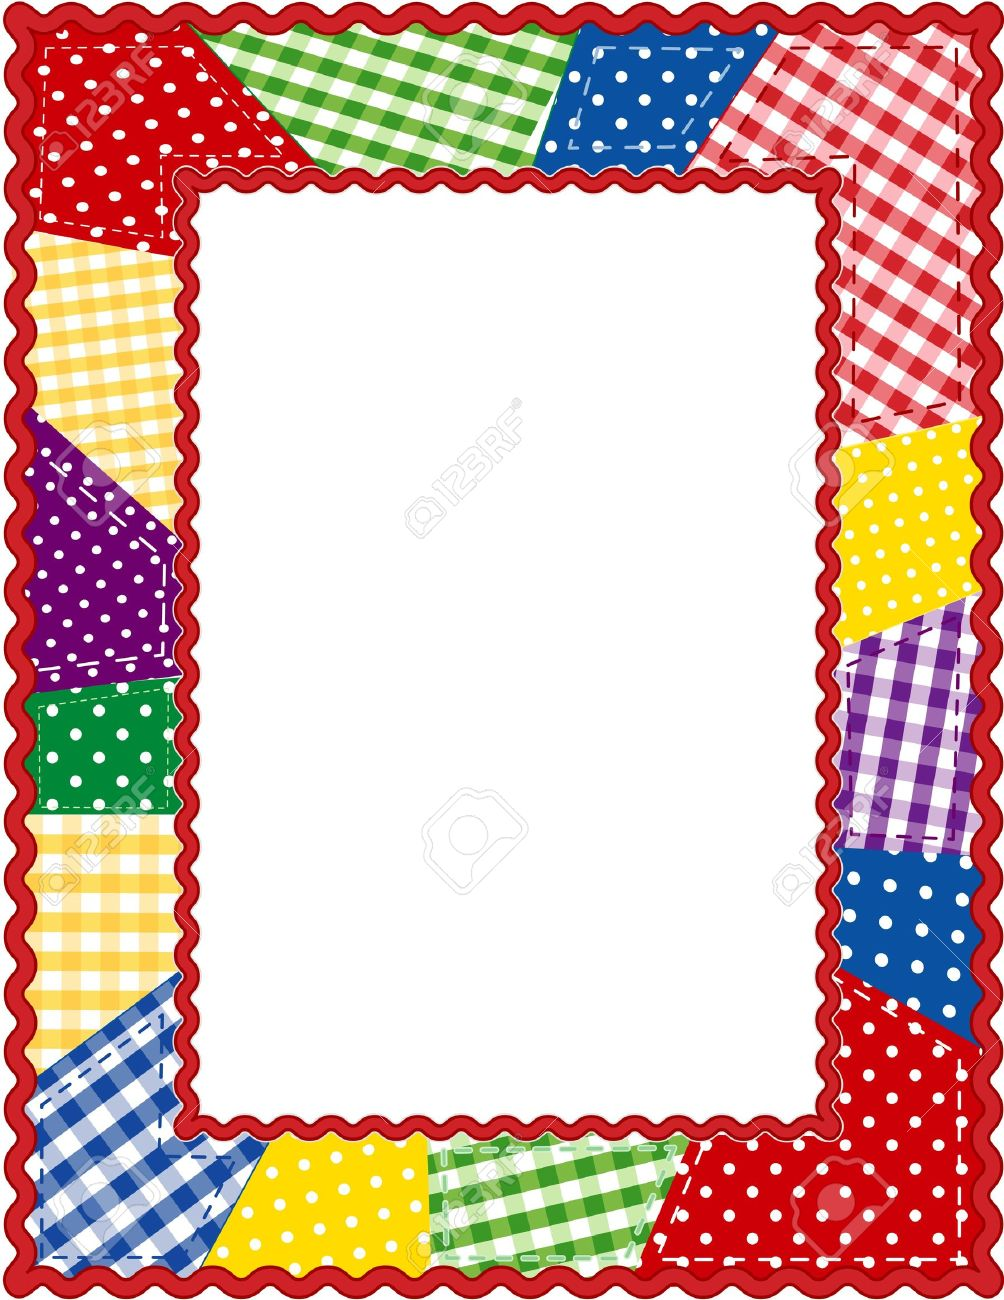 Free clipart frame quilt clip art freeuse download Free Quilt Clip Art, Download Free Clip Art, Free Clip Art on ... clip art freeuse download